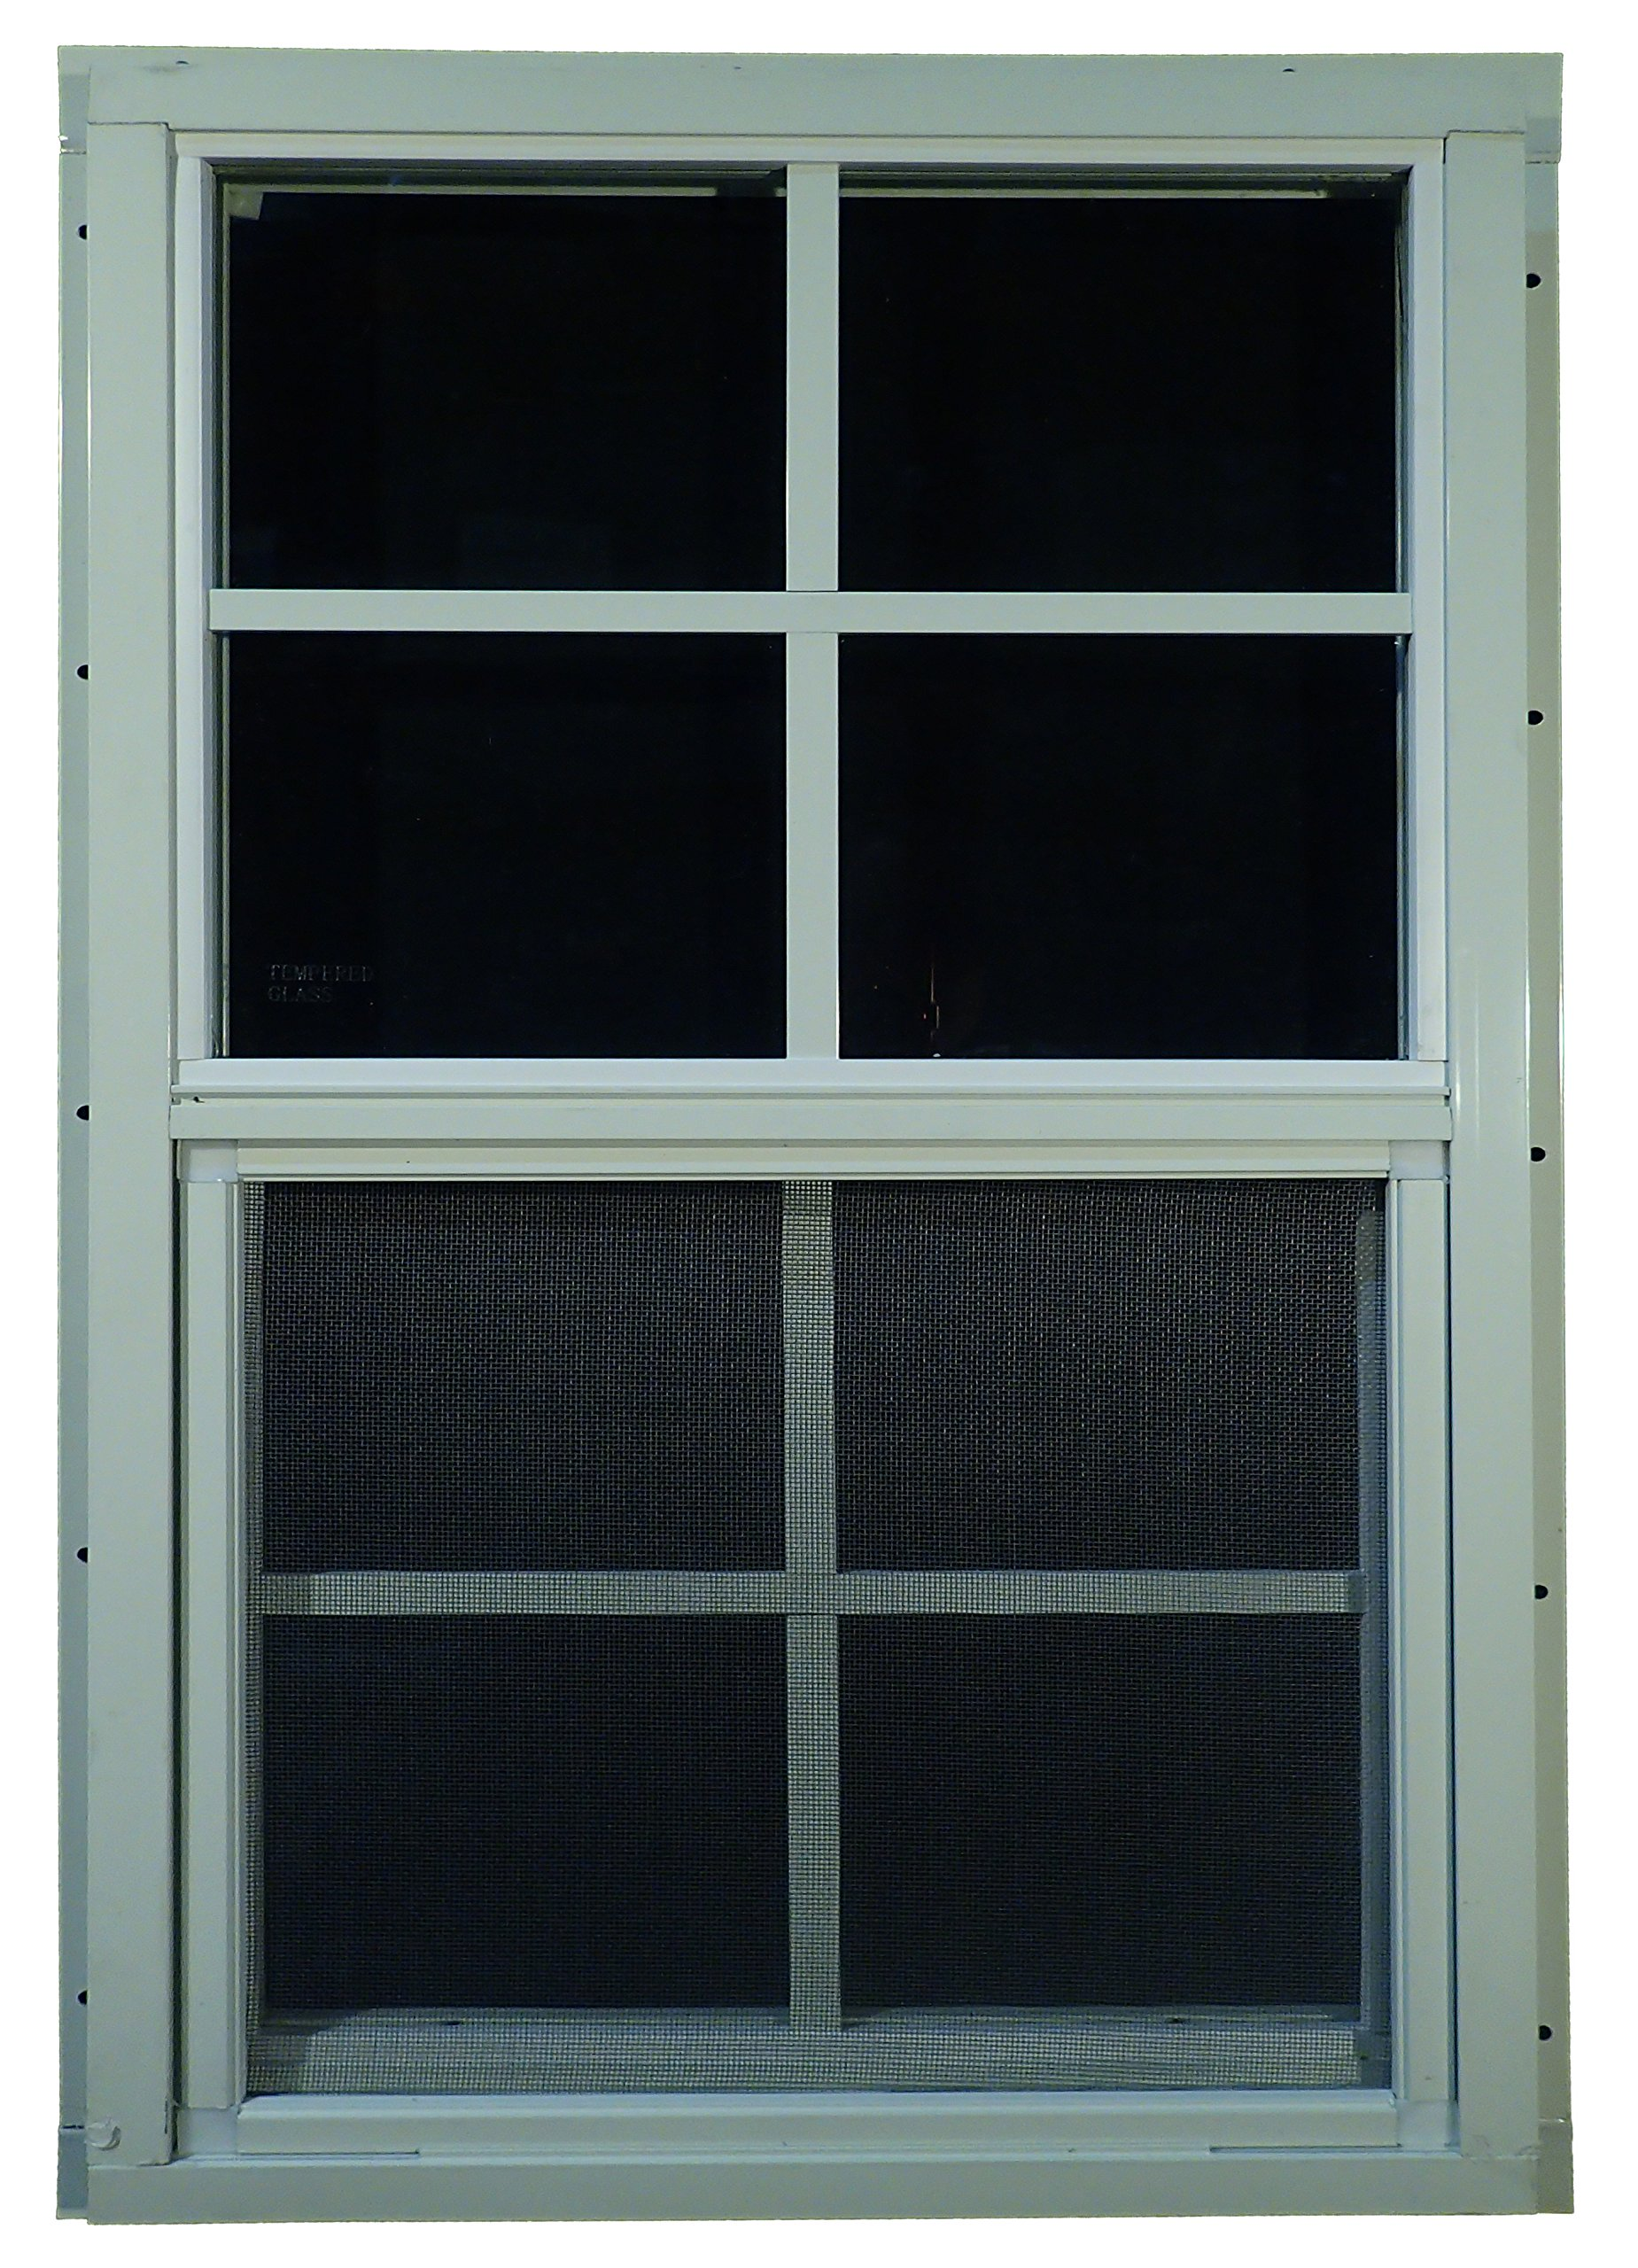 Shed Windows 14'' W x 21'' H - J-Lap w/ Safety Glass - Playhouse Windows (White)